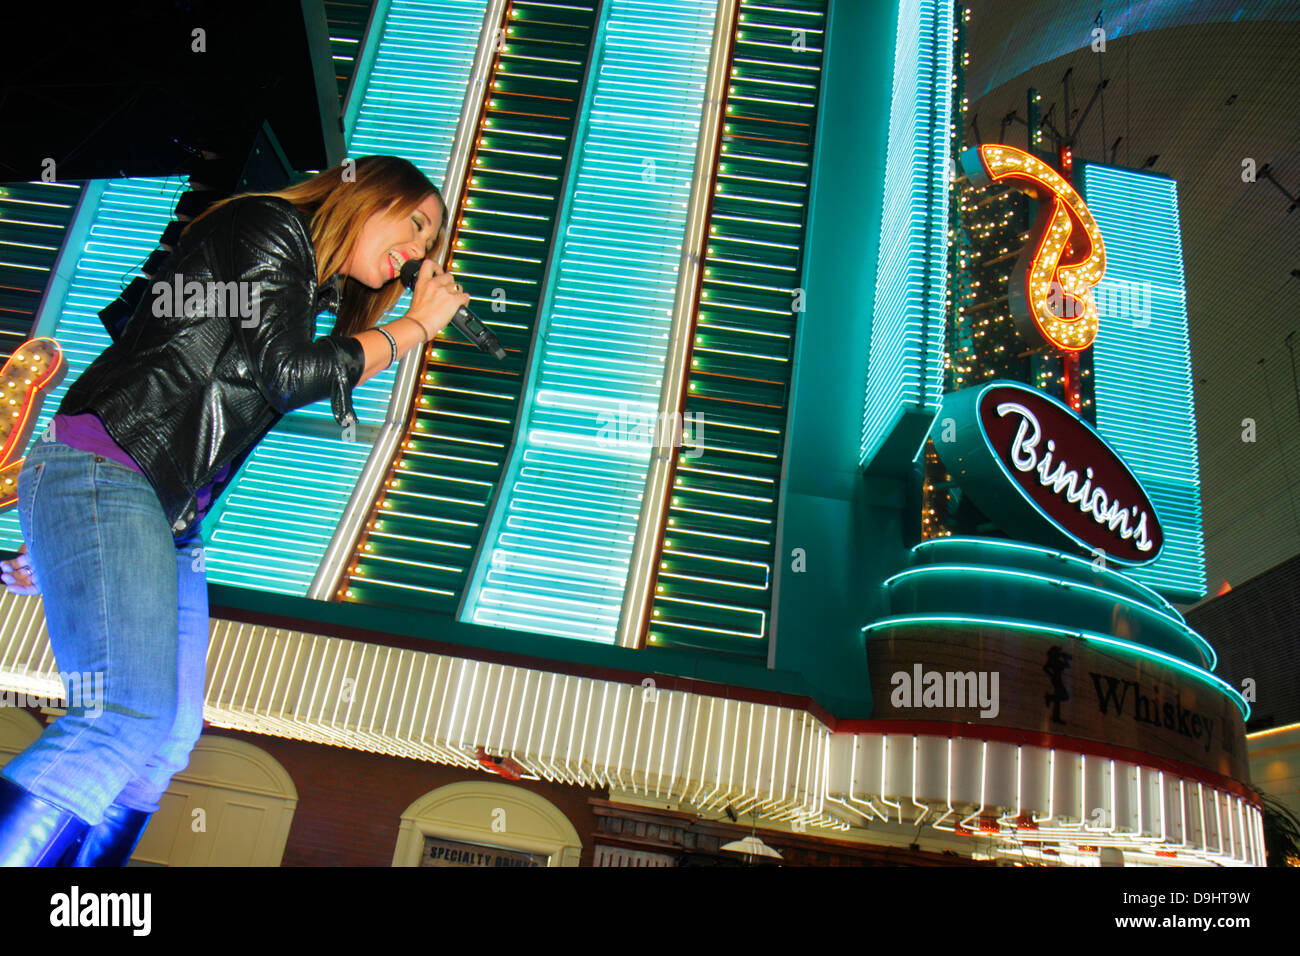 Neon Woman Sign Fremont Street Stock Photos & Neon Woman Sign ...